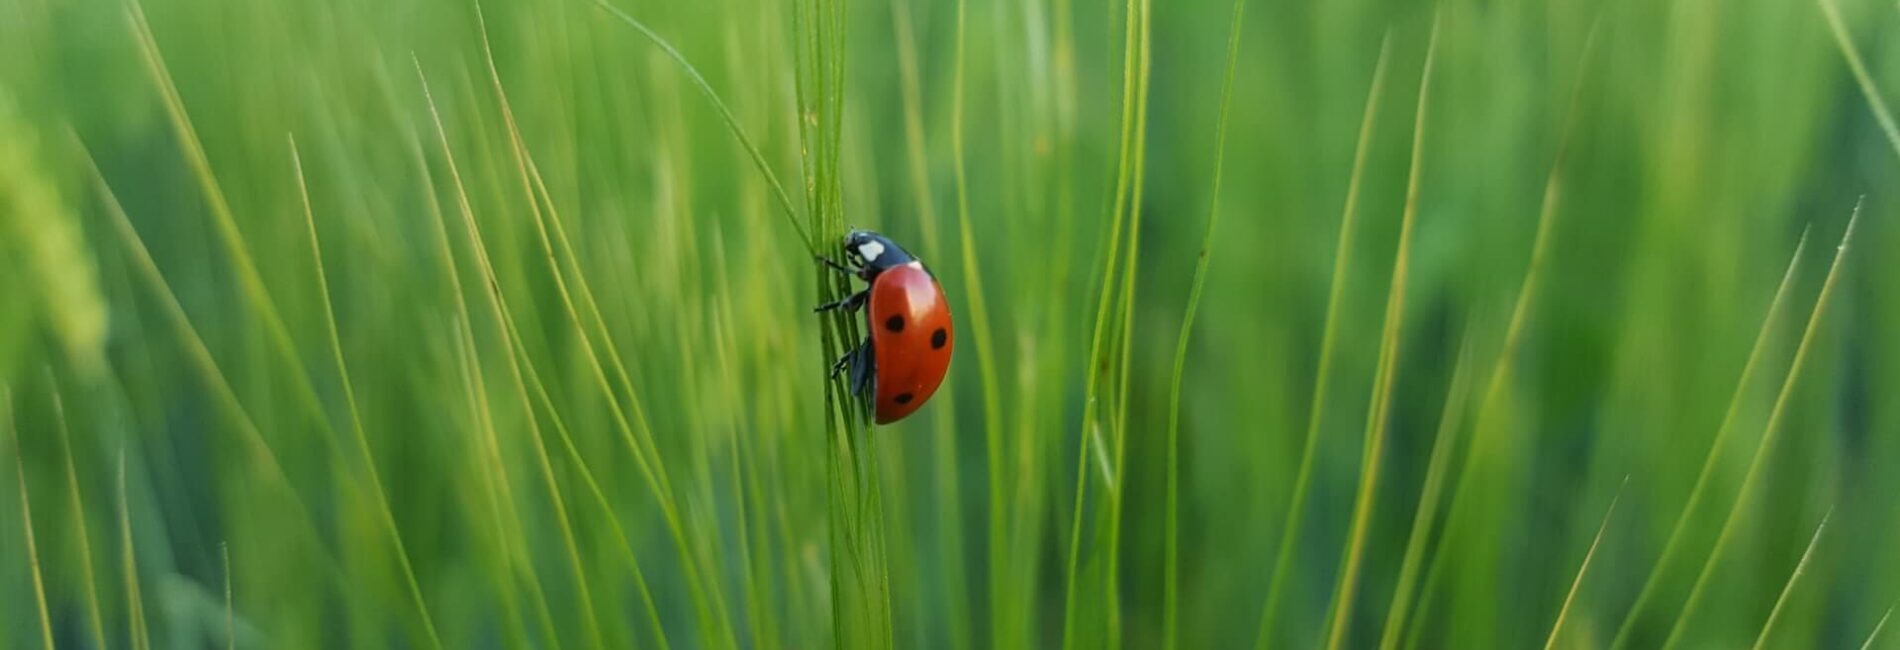 The Ladybug–A Wanted Visitor for Your Garden